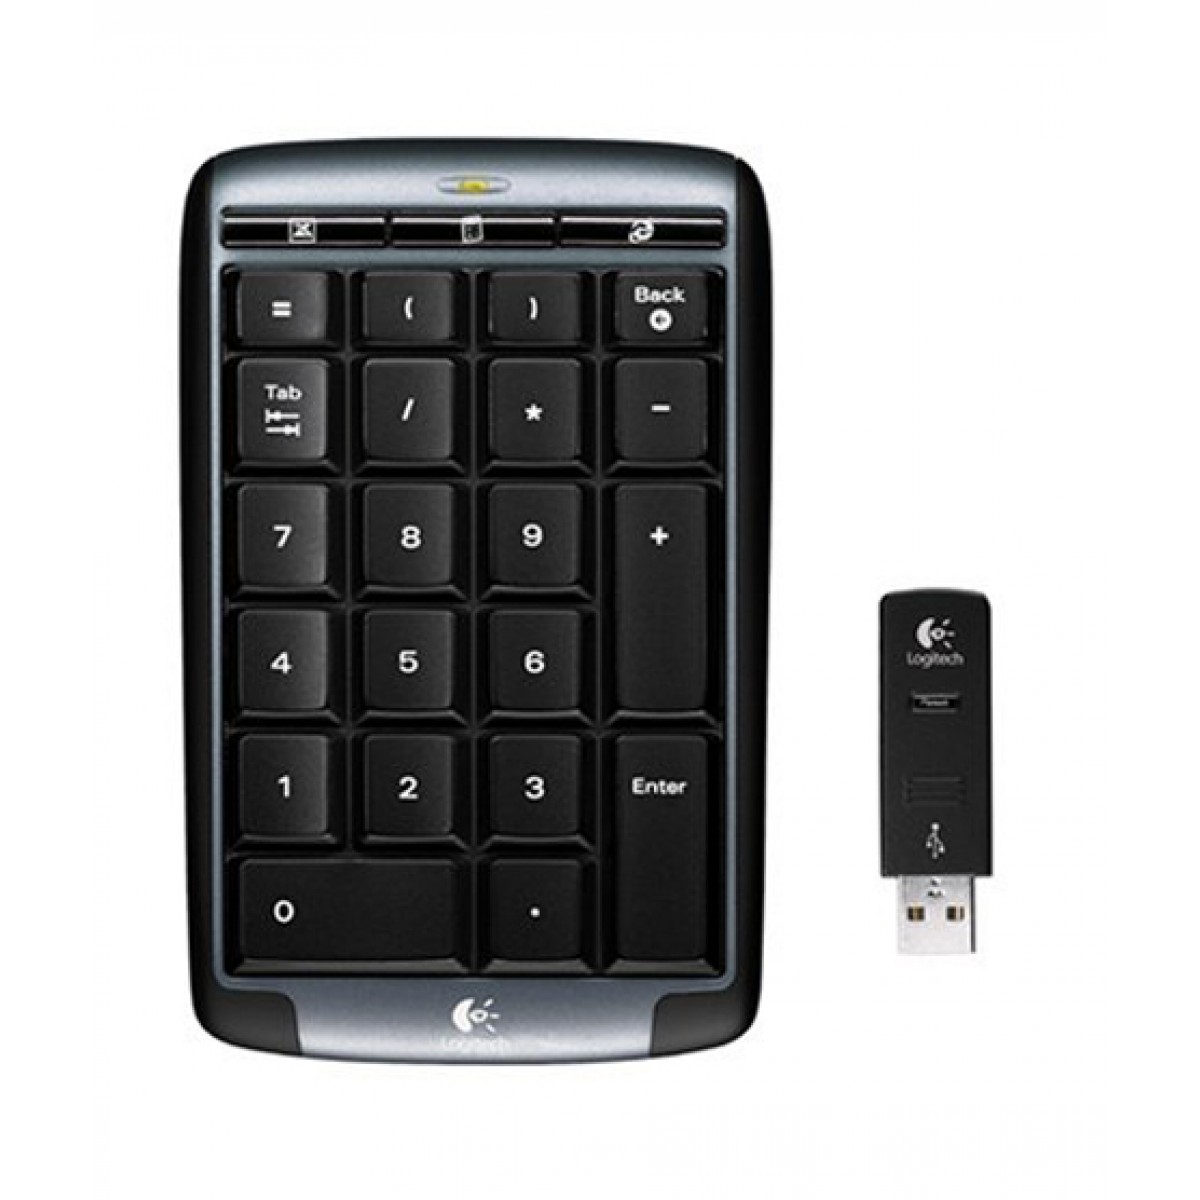 7188a181ca1 Logitech Cordless Number Pad Price in Pakistan | Buy Logitech Cordless  Number Pad | iShopping.pk